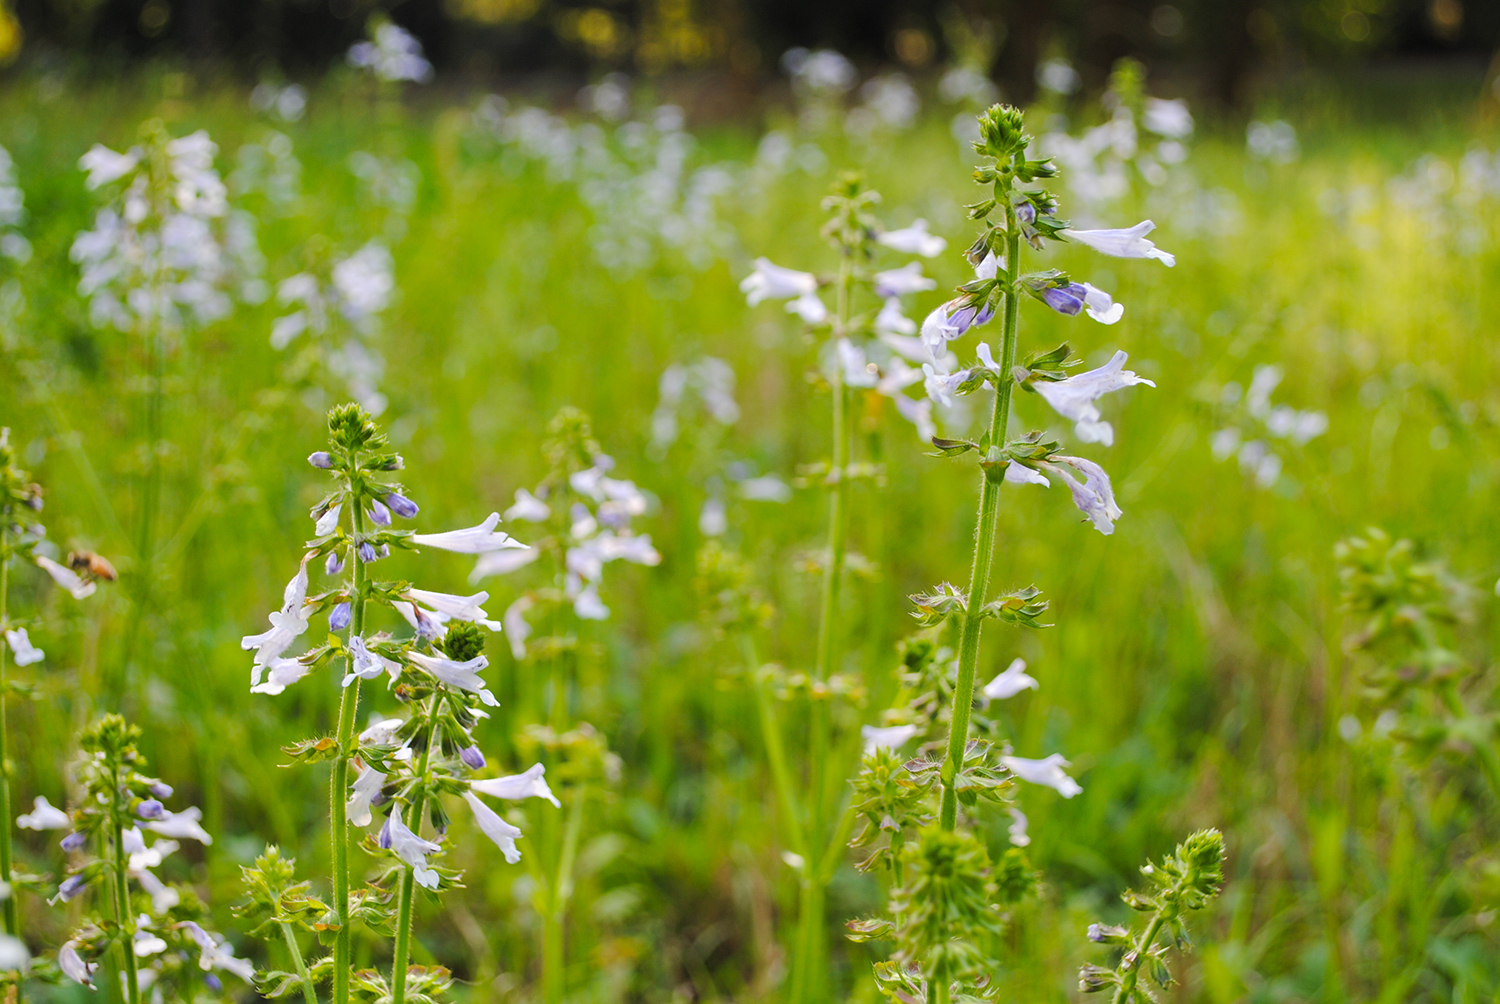 Salvia lyrata (lyre-leaf sage) is a common acquaintance to right-of-ways, especially in suburban lawns.